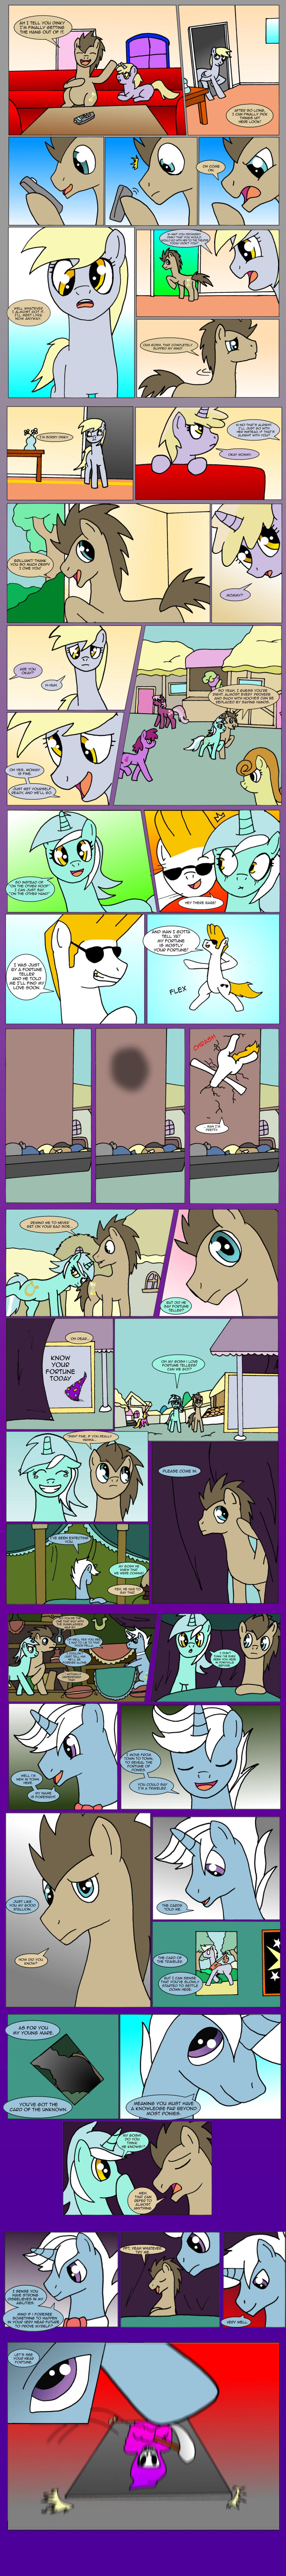 Doctor Whooves - Spending Time pt 5